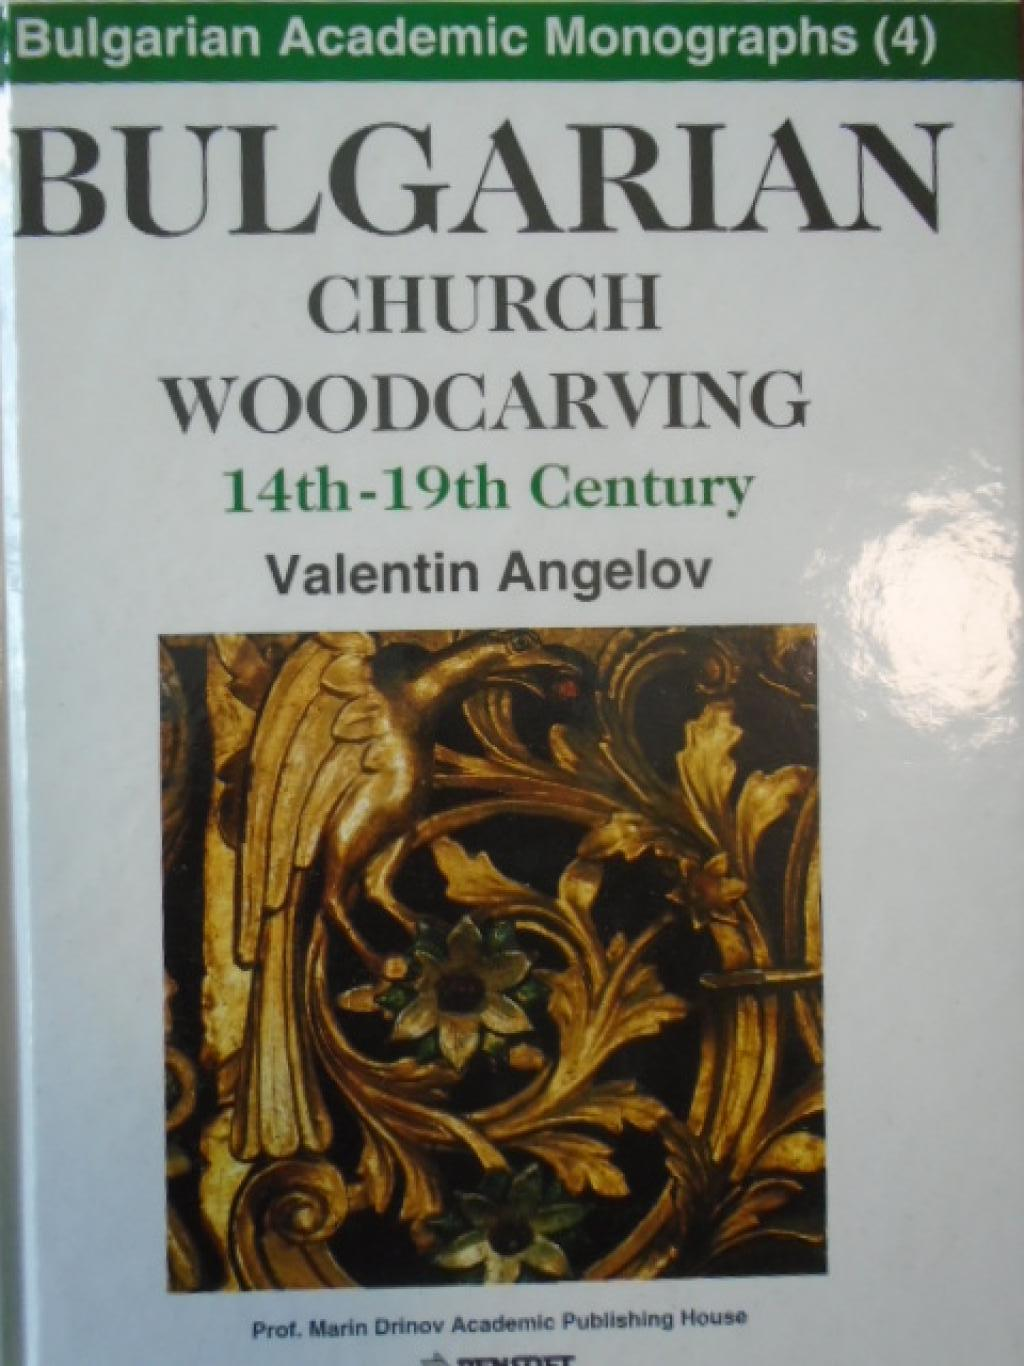 Bulgarian Church Woodcarving 14th-19th Century, Valentin Angelov